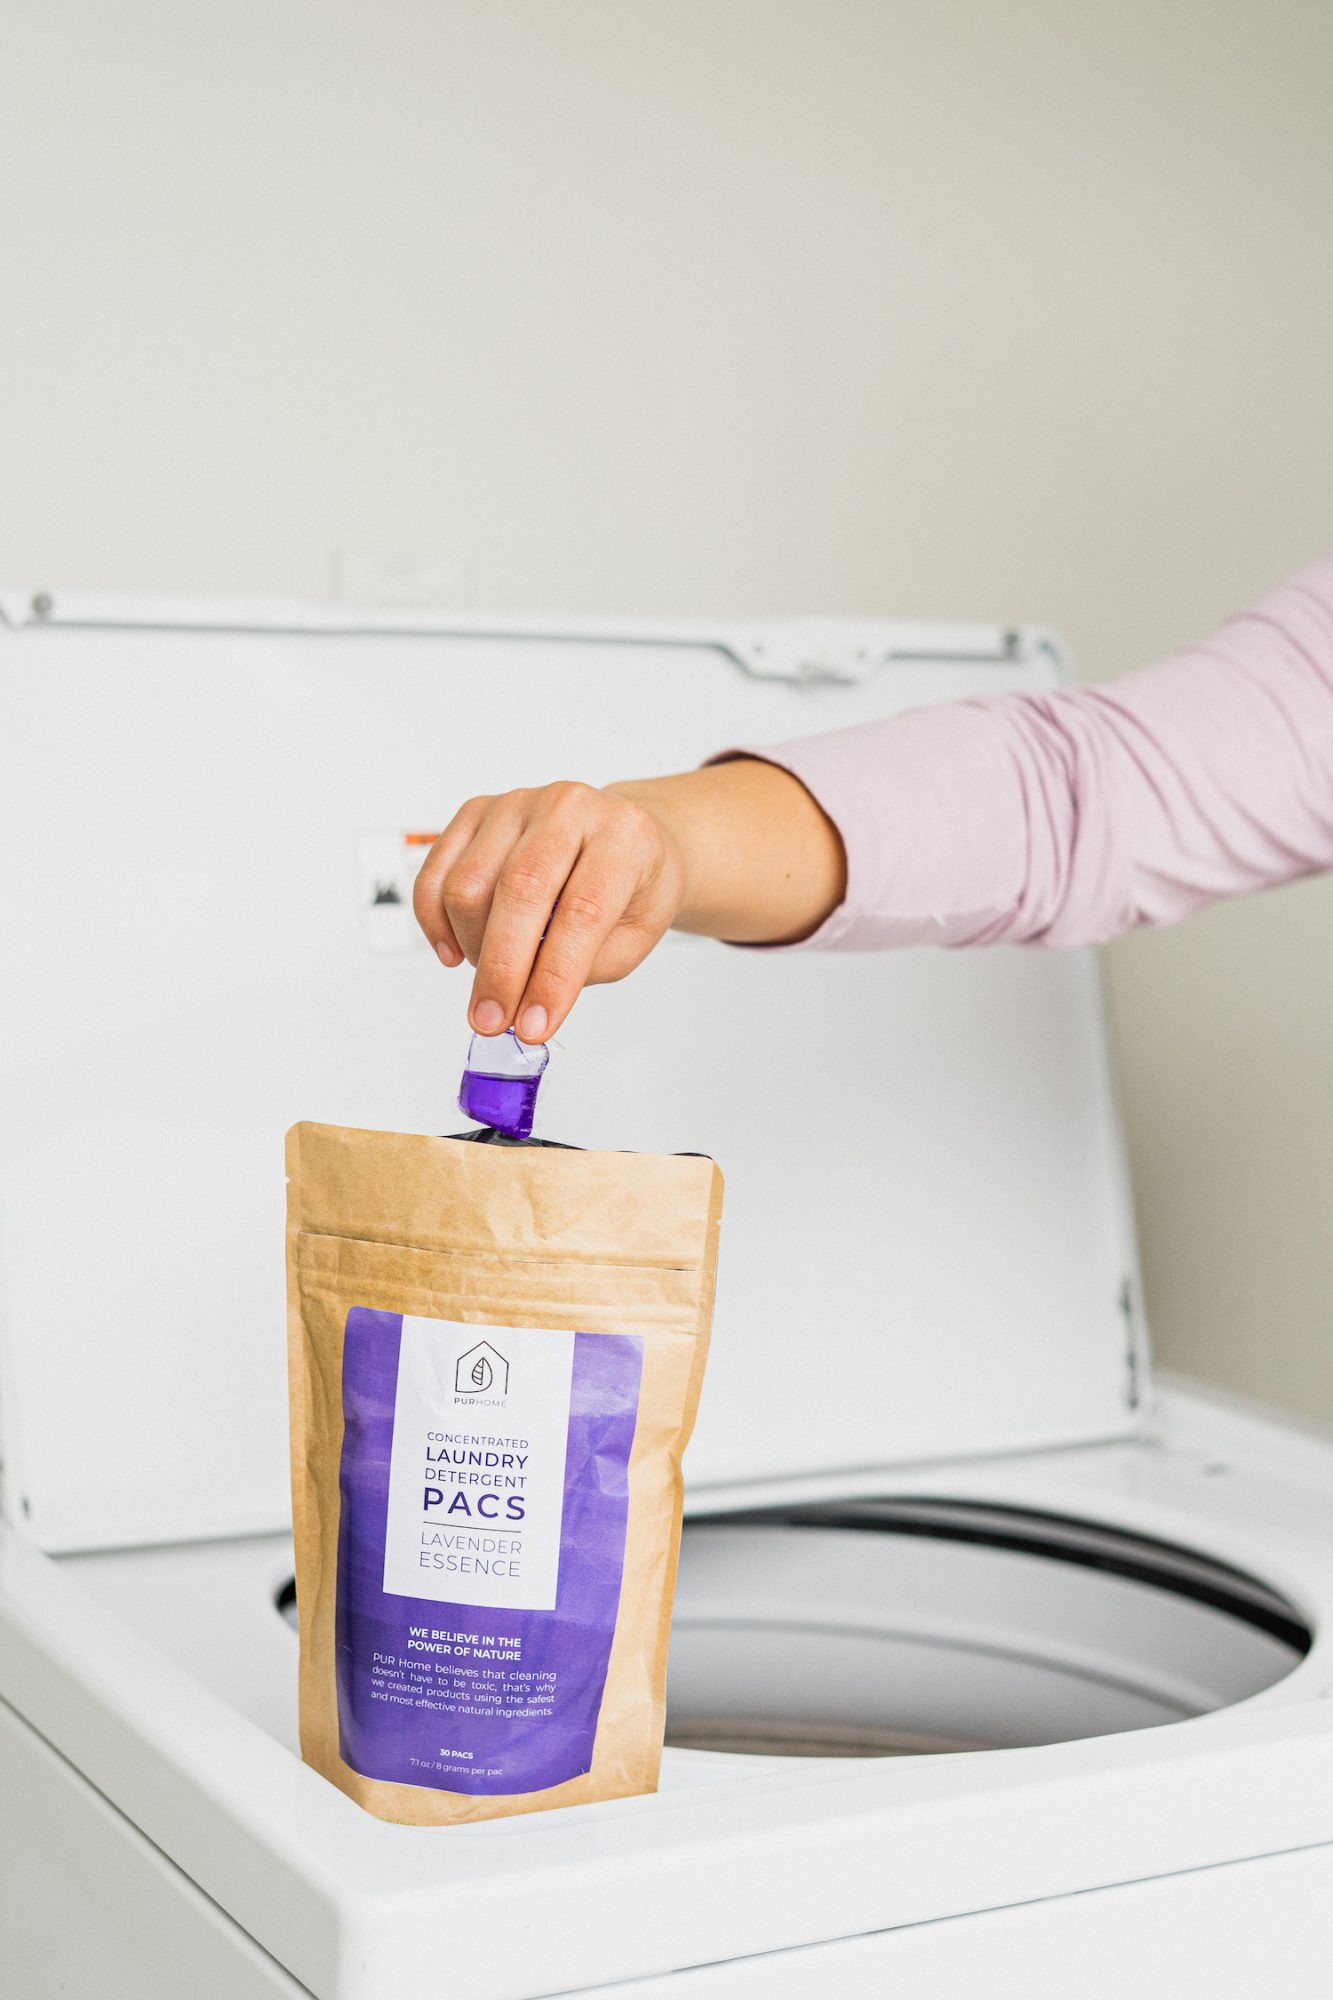 PUR Home Laundry Pacs